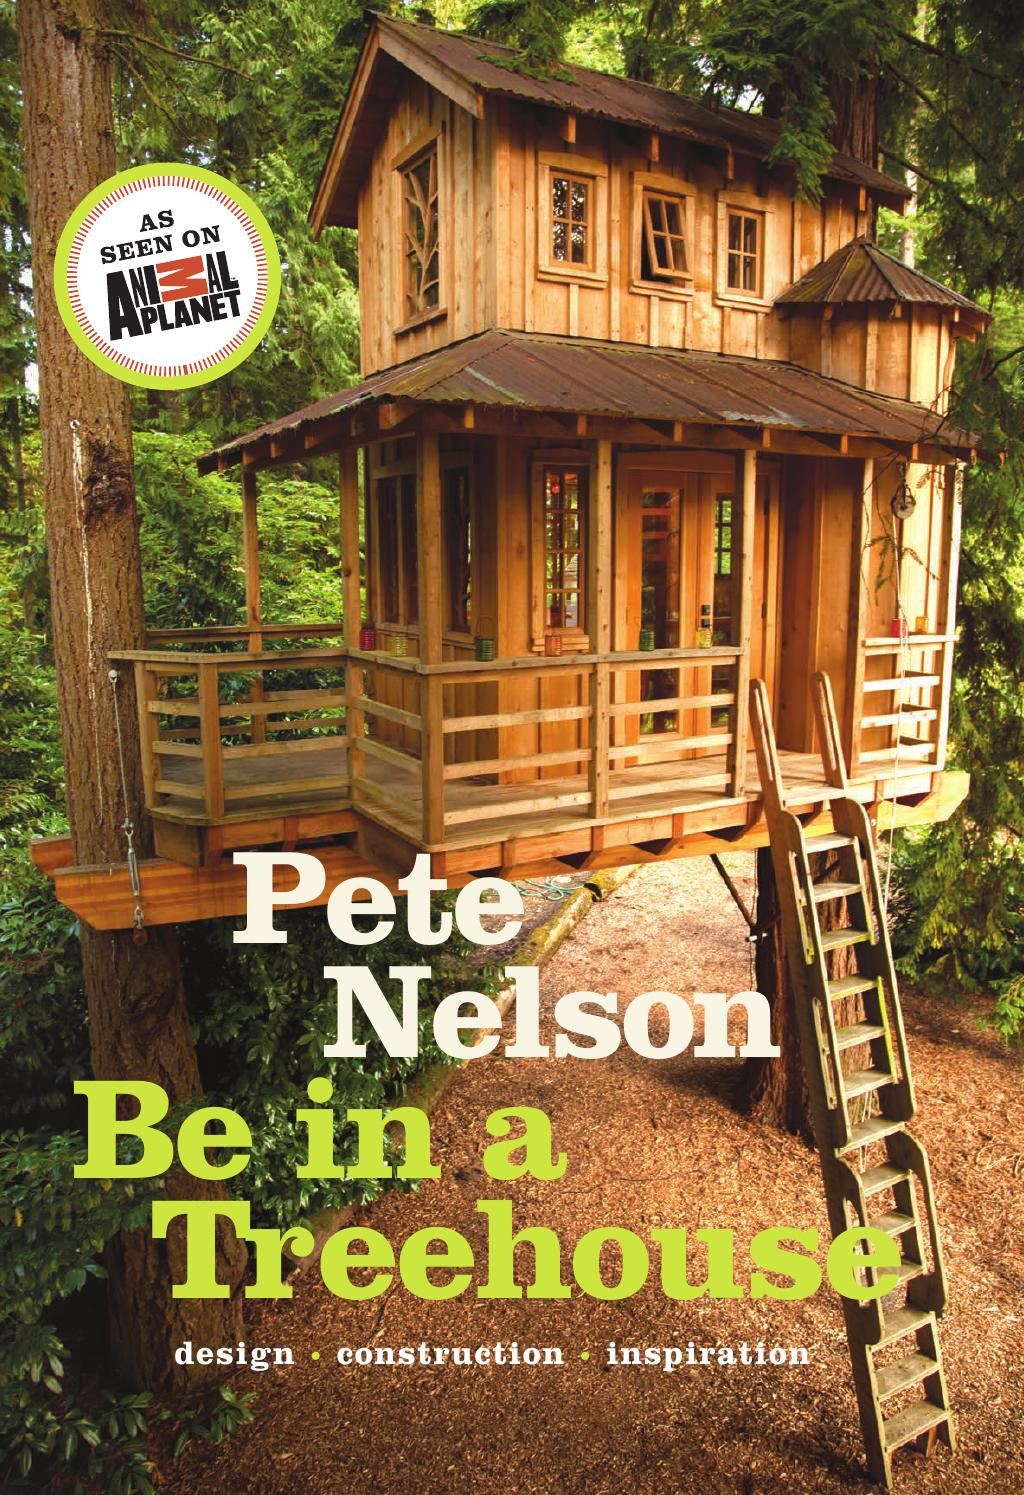 Merveilleux Be In A Treehouse: Design / Construction / Inspiration By ...